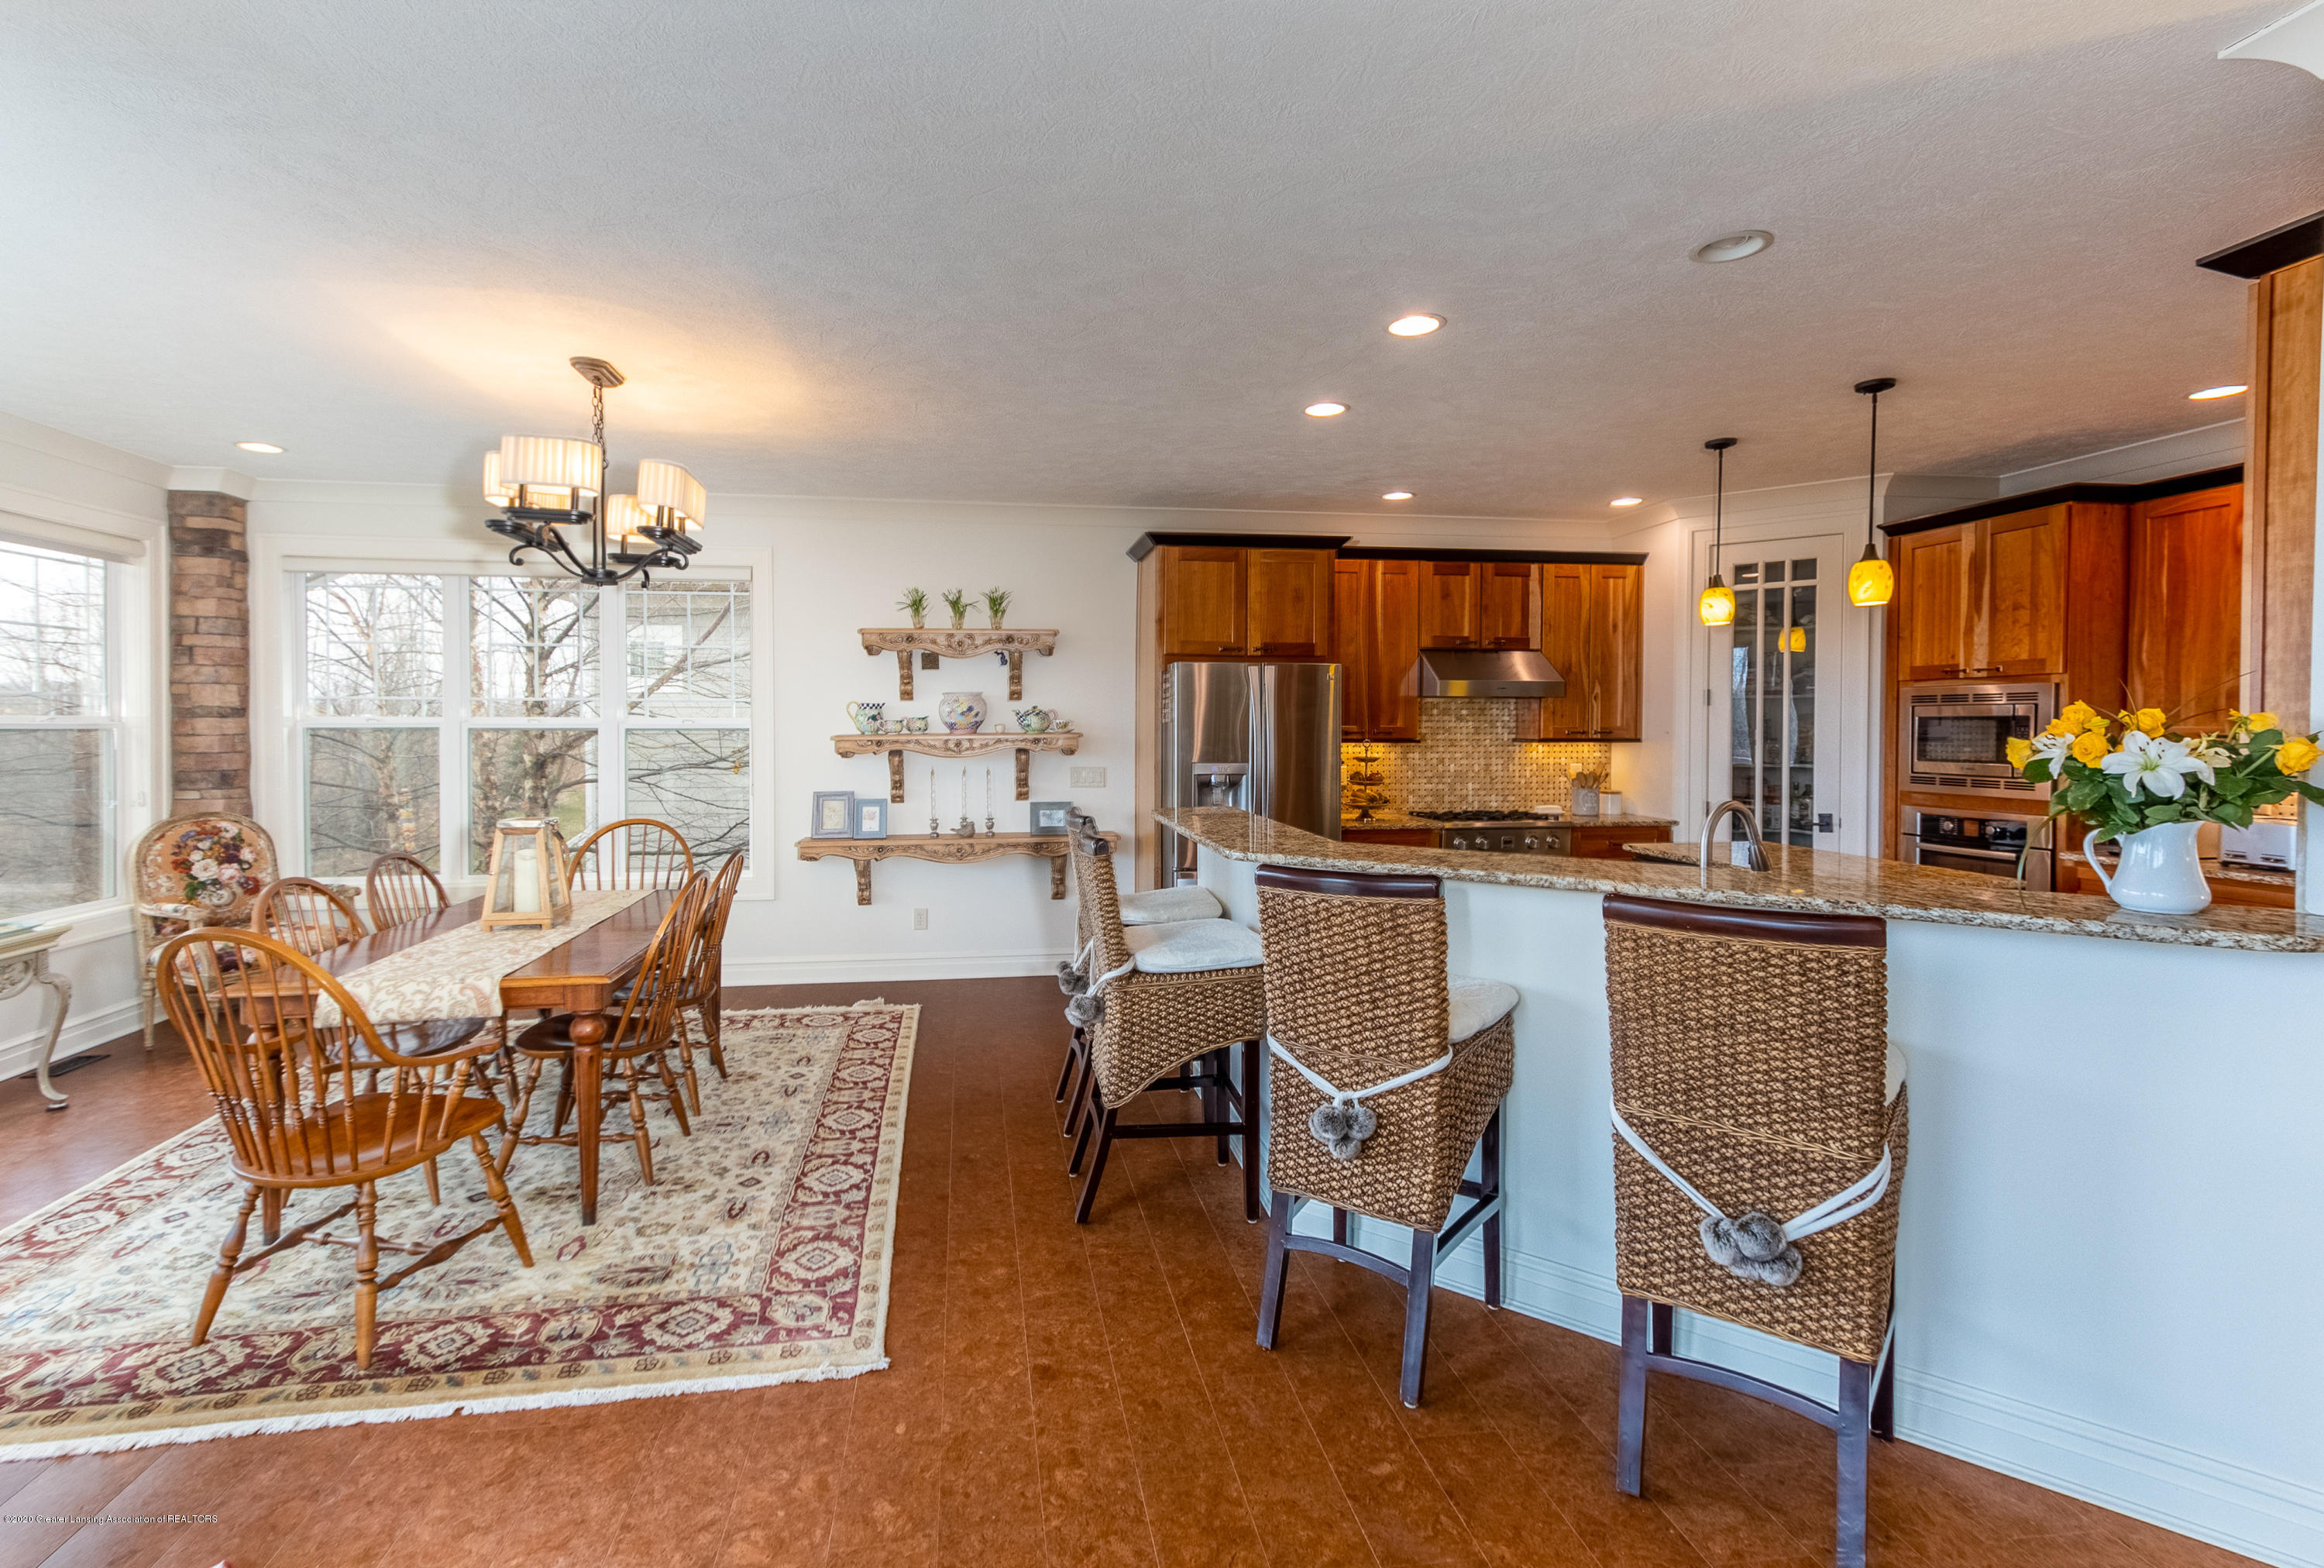 528 Aquila Dr - Dining Room/Kitchen - 16